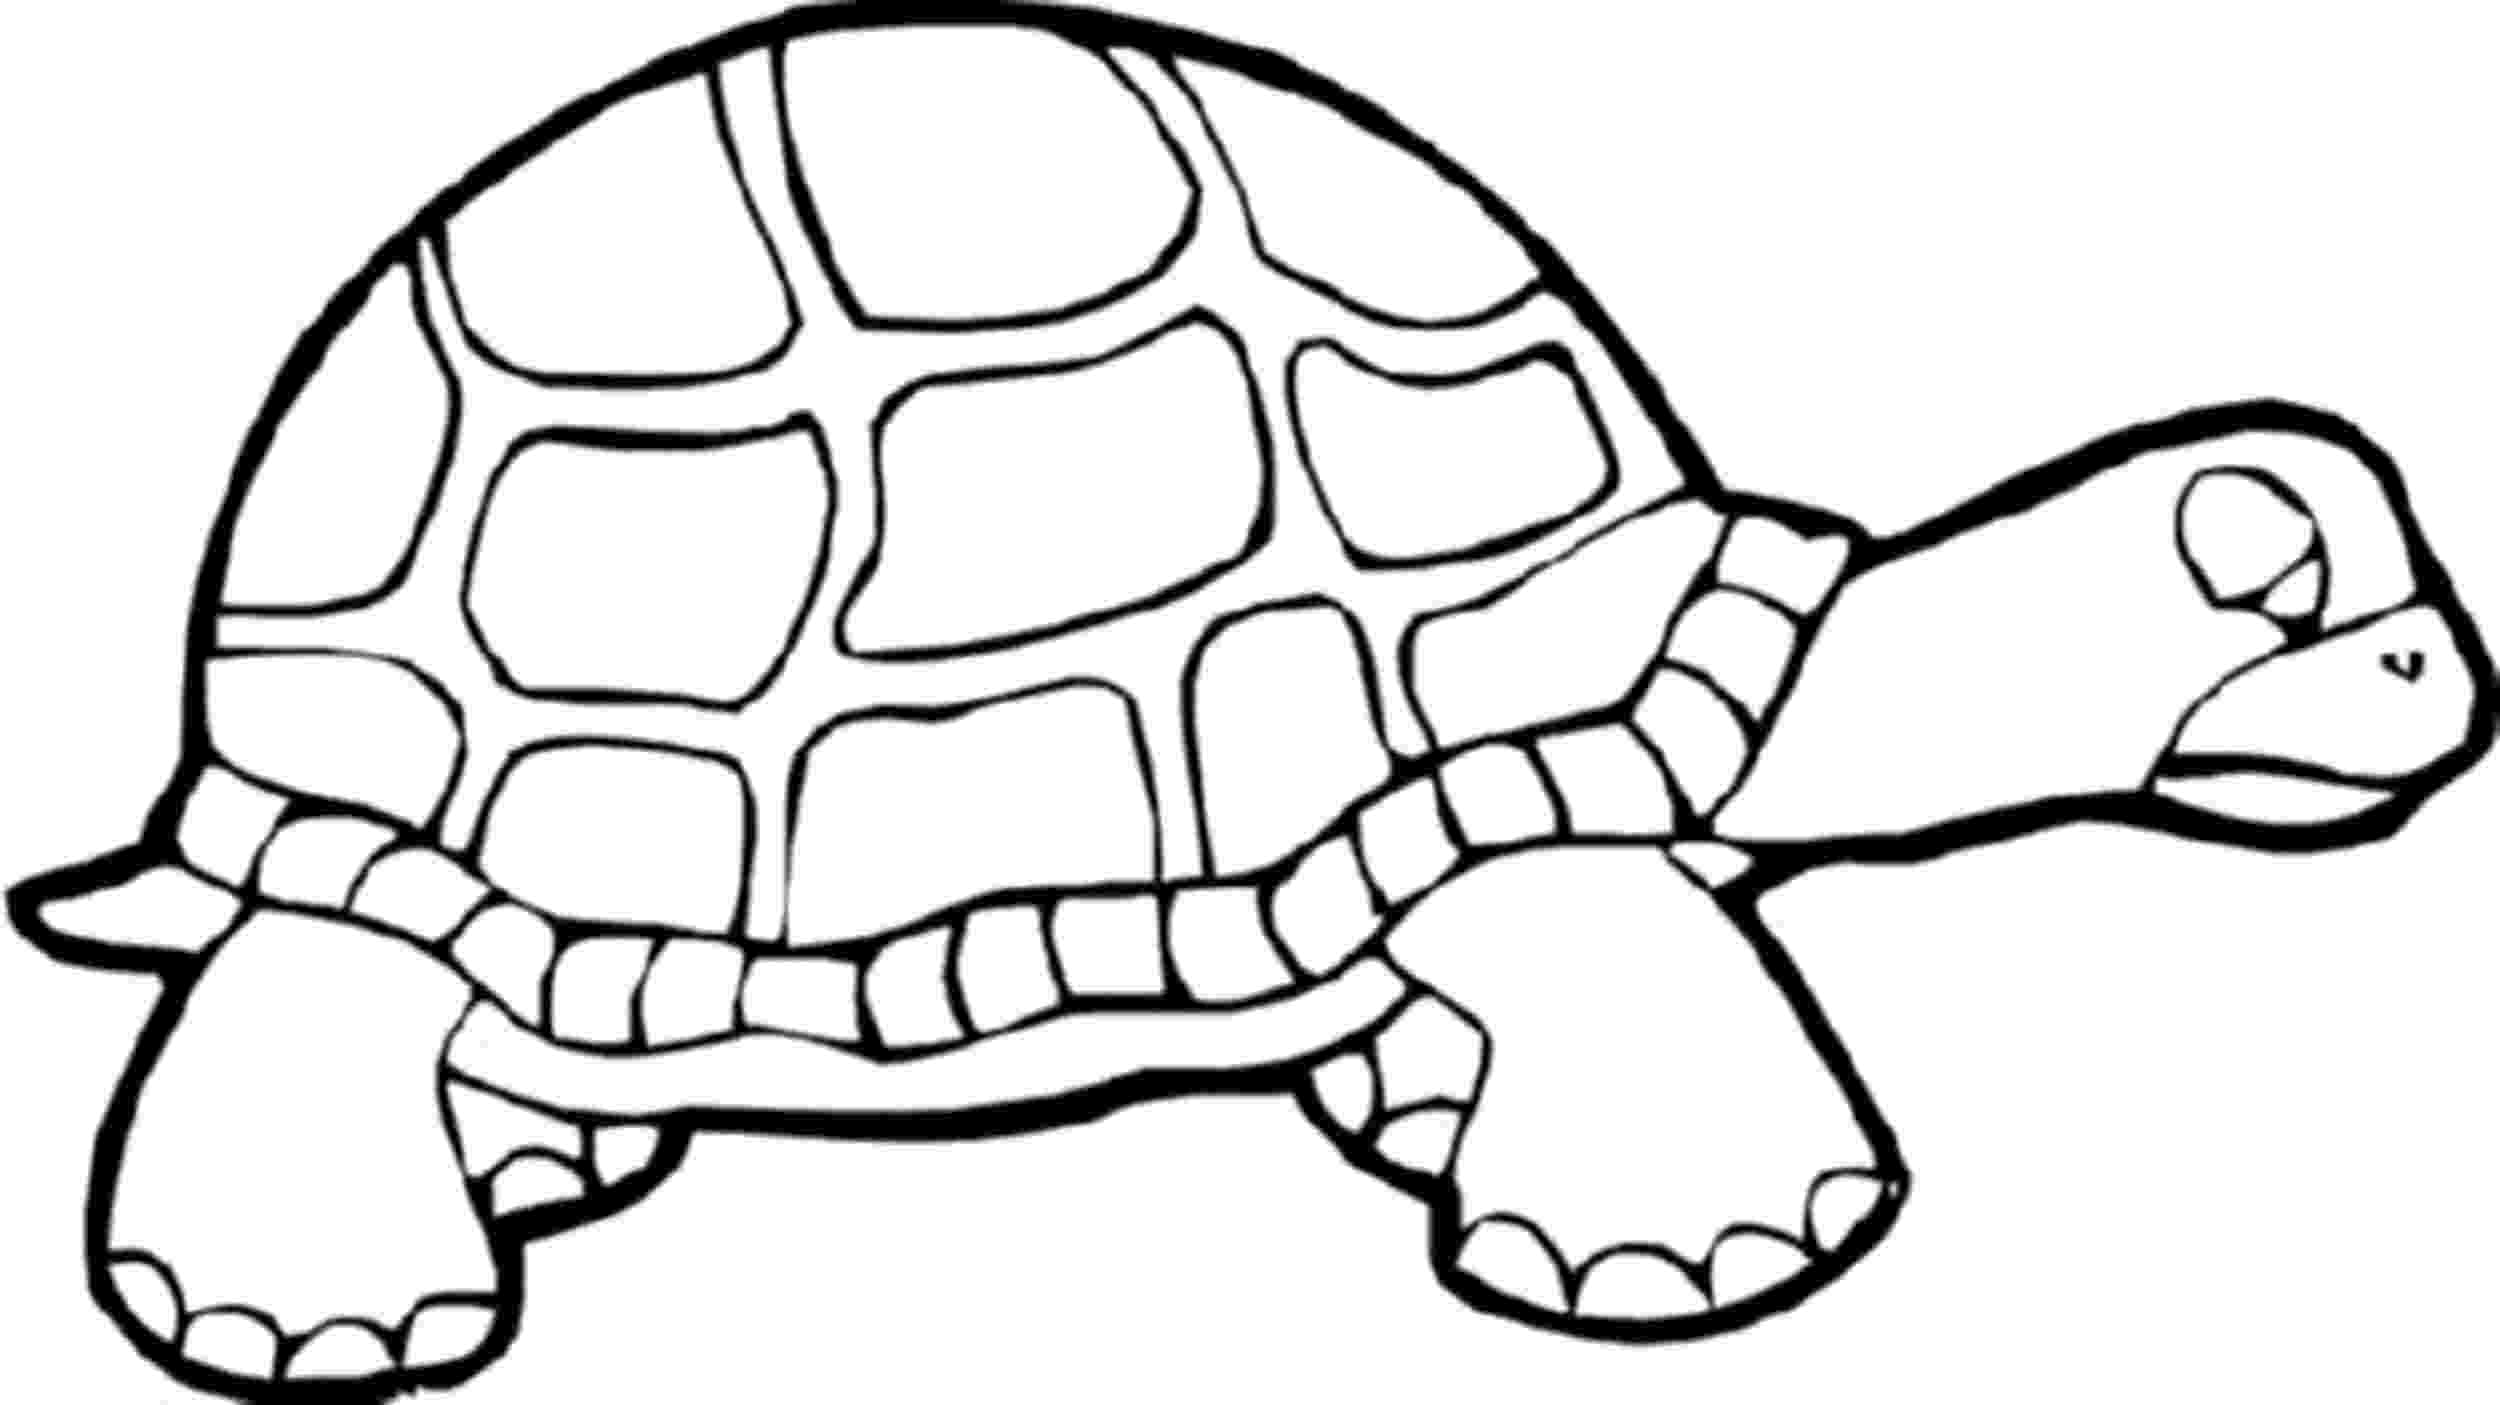 turtle coloring book turtle coloring pages getcoloringpagescom coloring book turtle 1 1